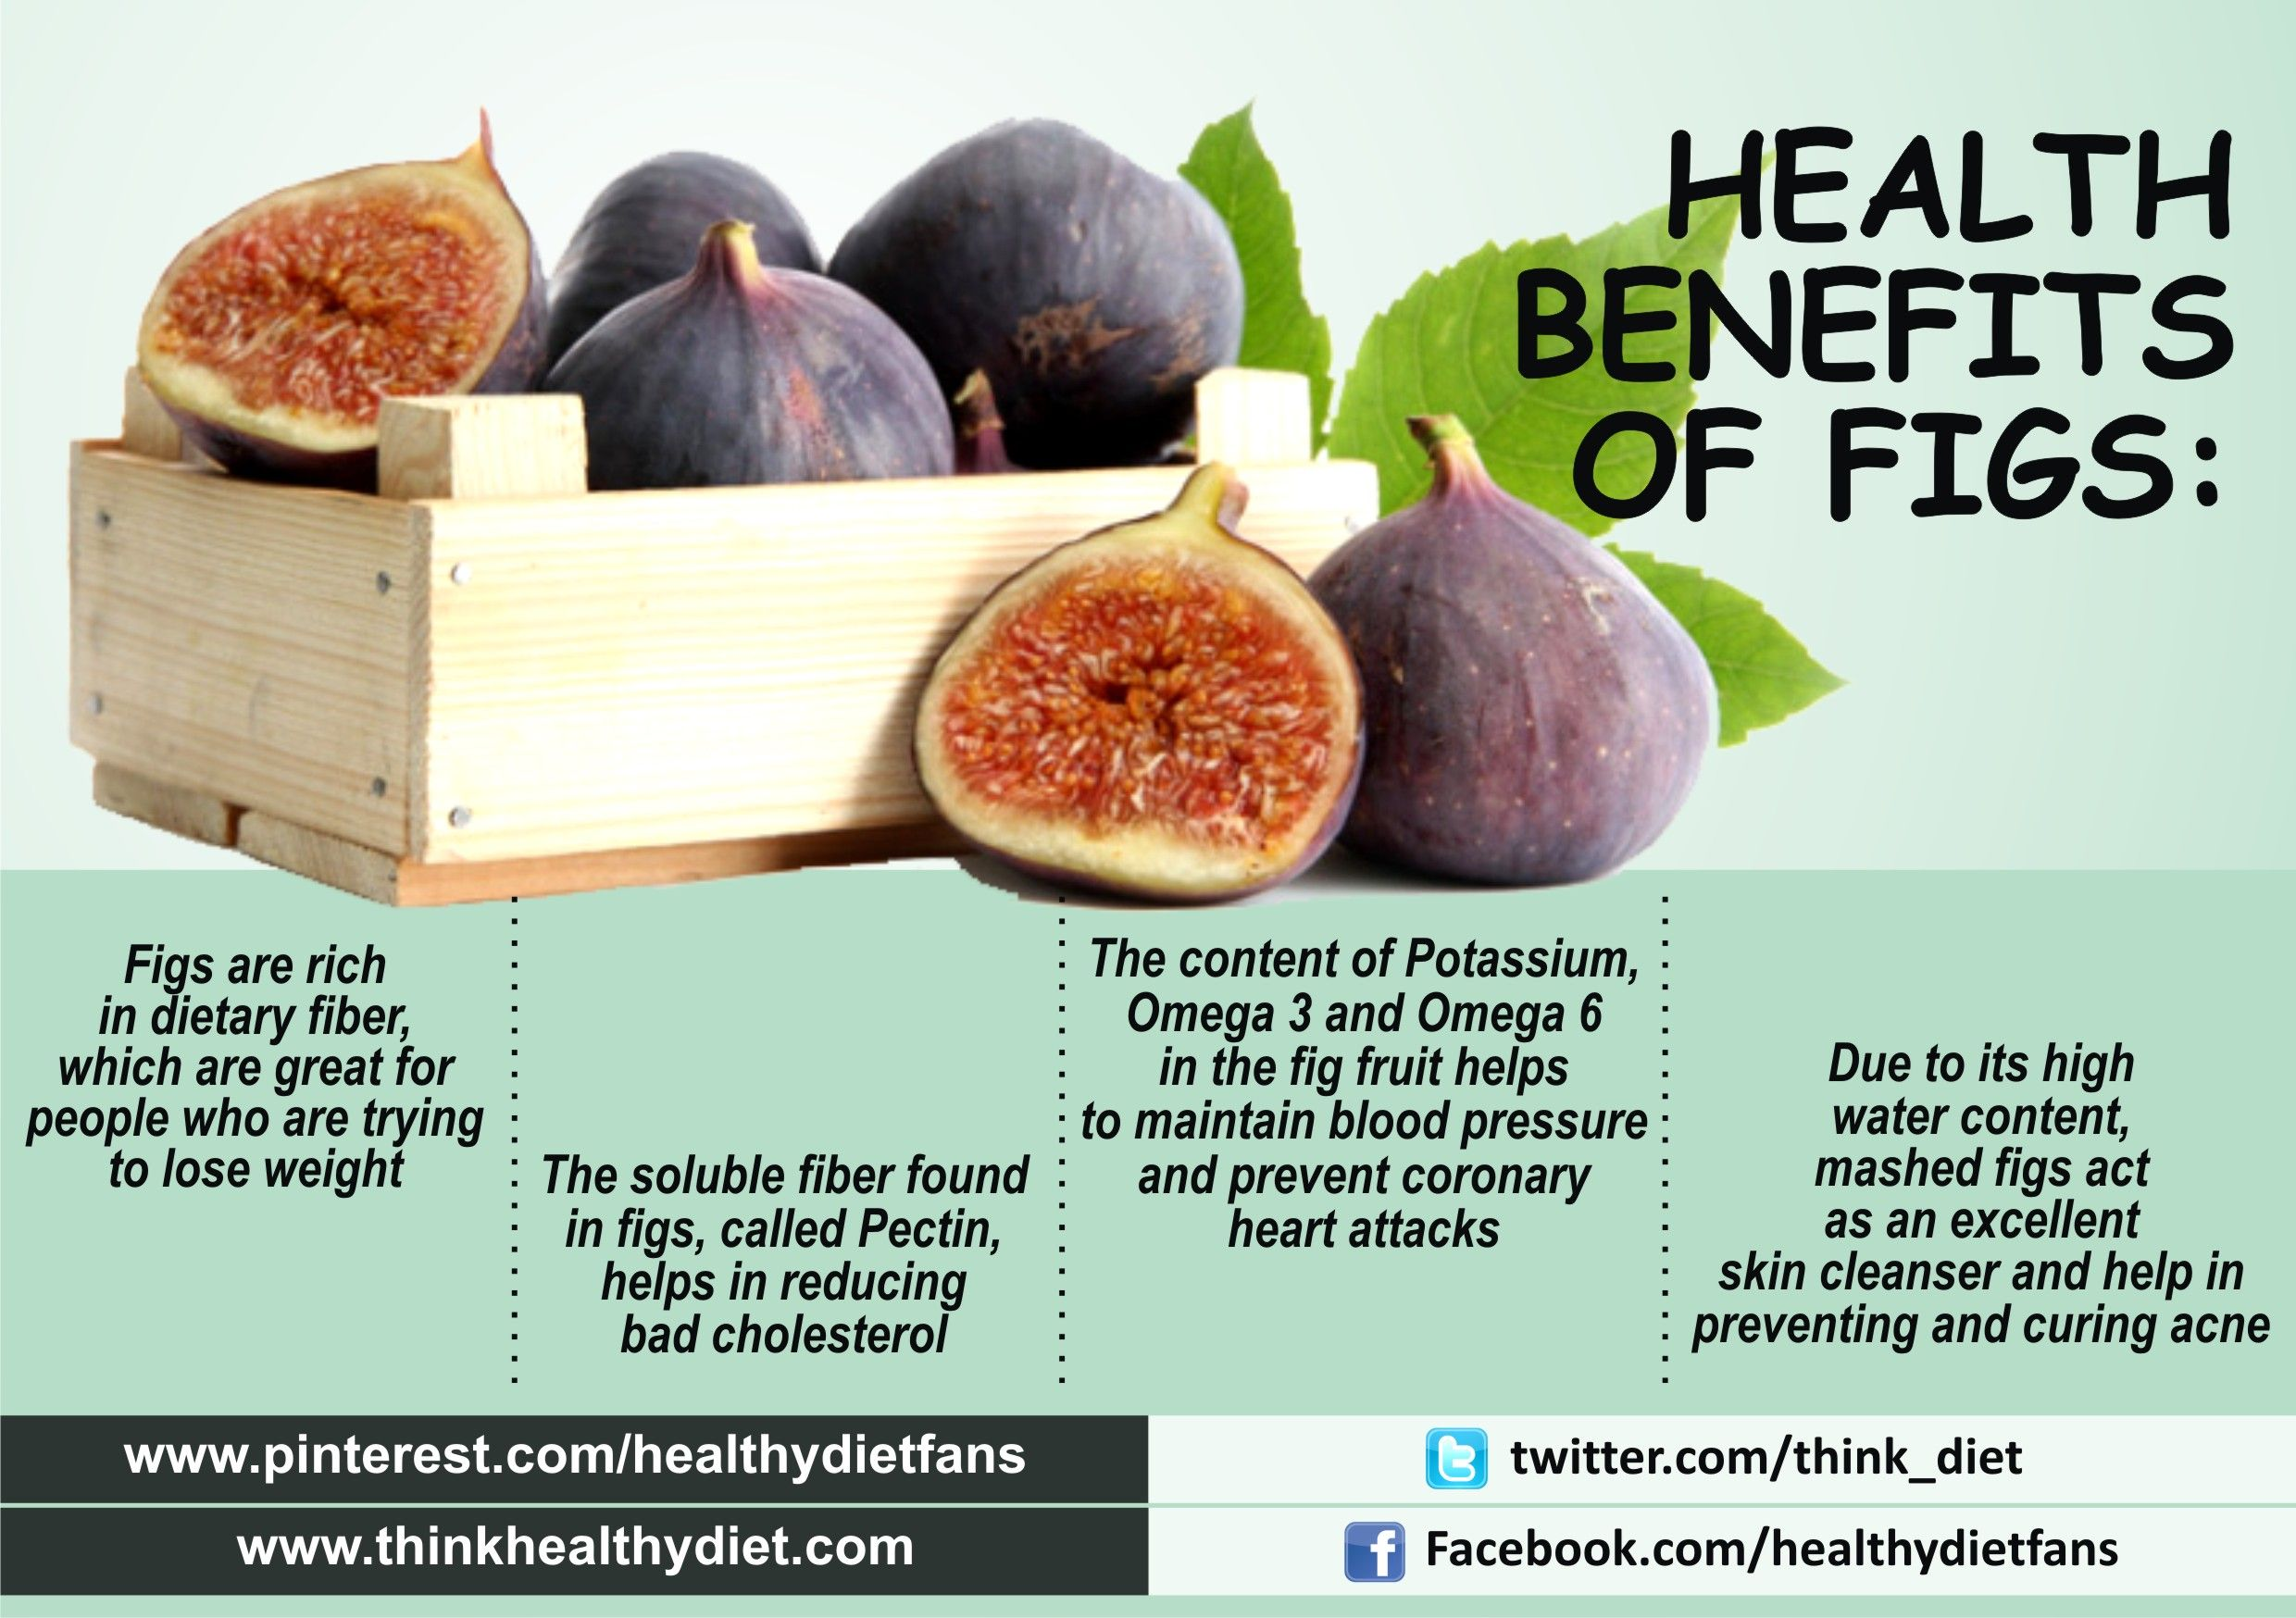 Health Benefits of Figs Health benefits of figs, Health